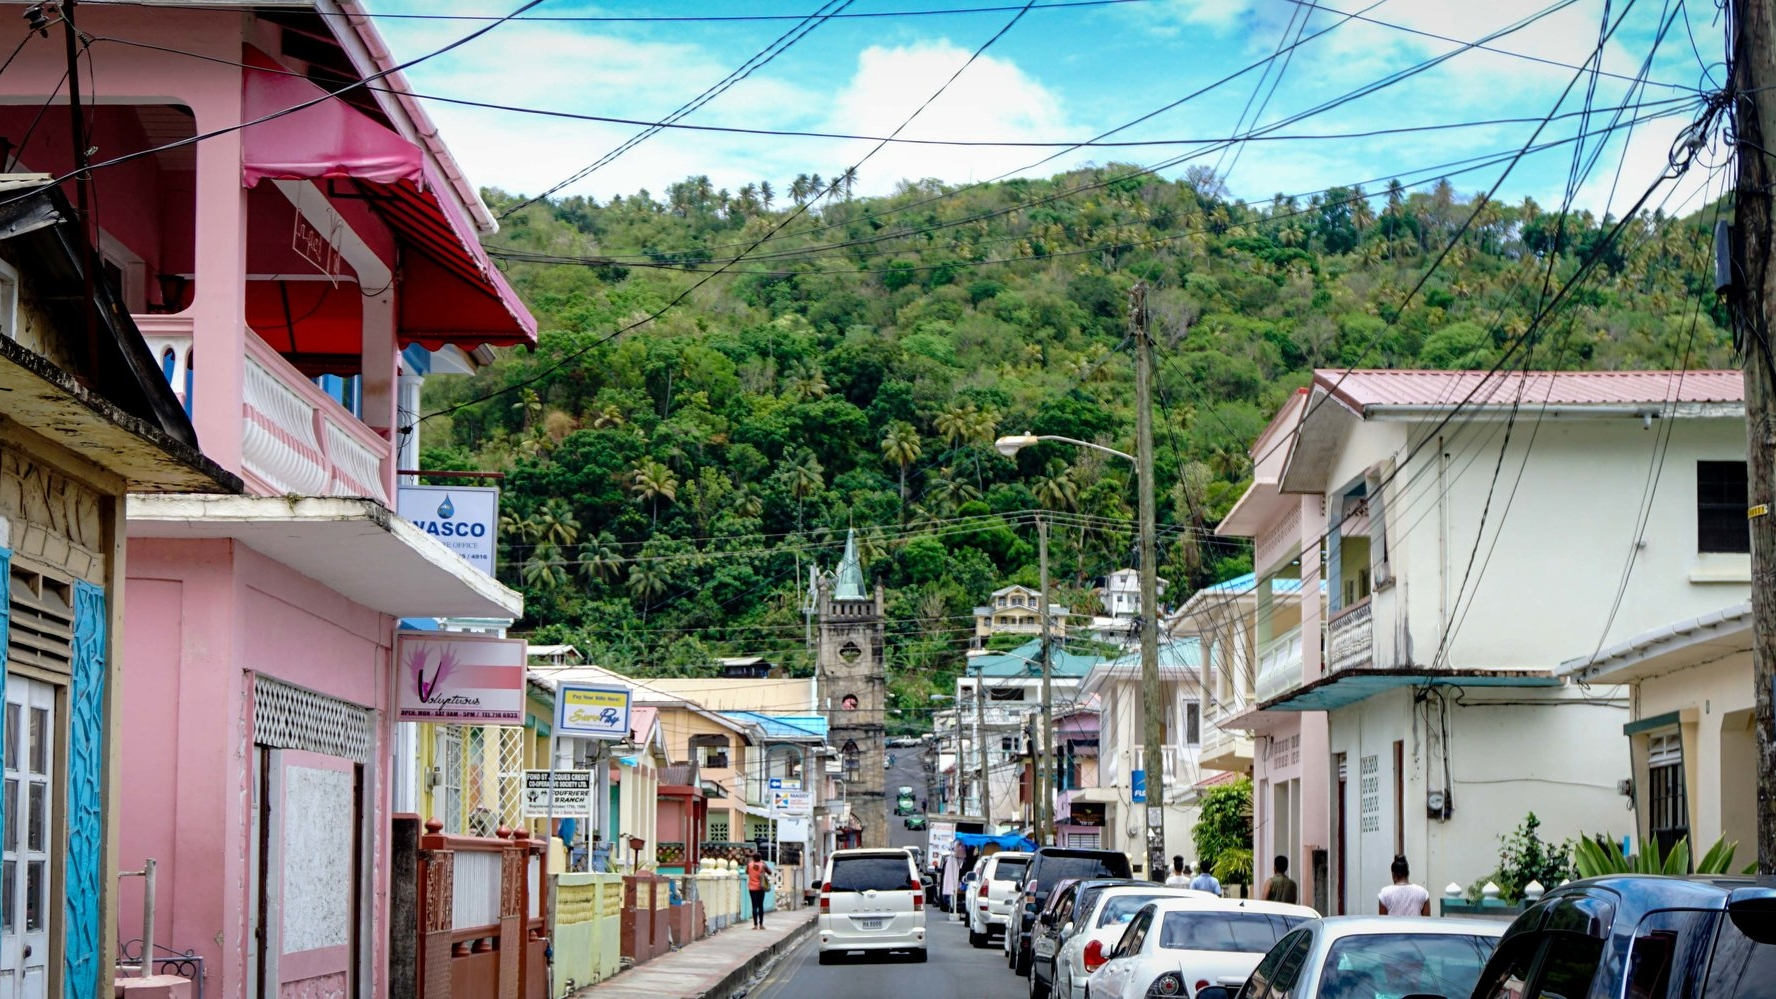 Culture - As one of the Caribbean's most hospitable cultures,natives here are more than willing to help tourists make the most of their experience and share with you their history and culture. Plus, the fact that everyone is so happy and inviting make travelers feel safe and welcomed.